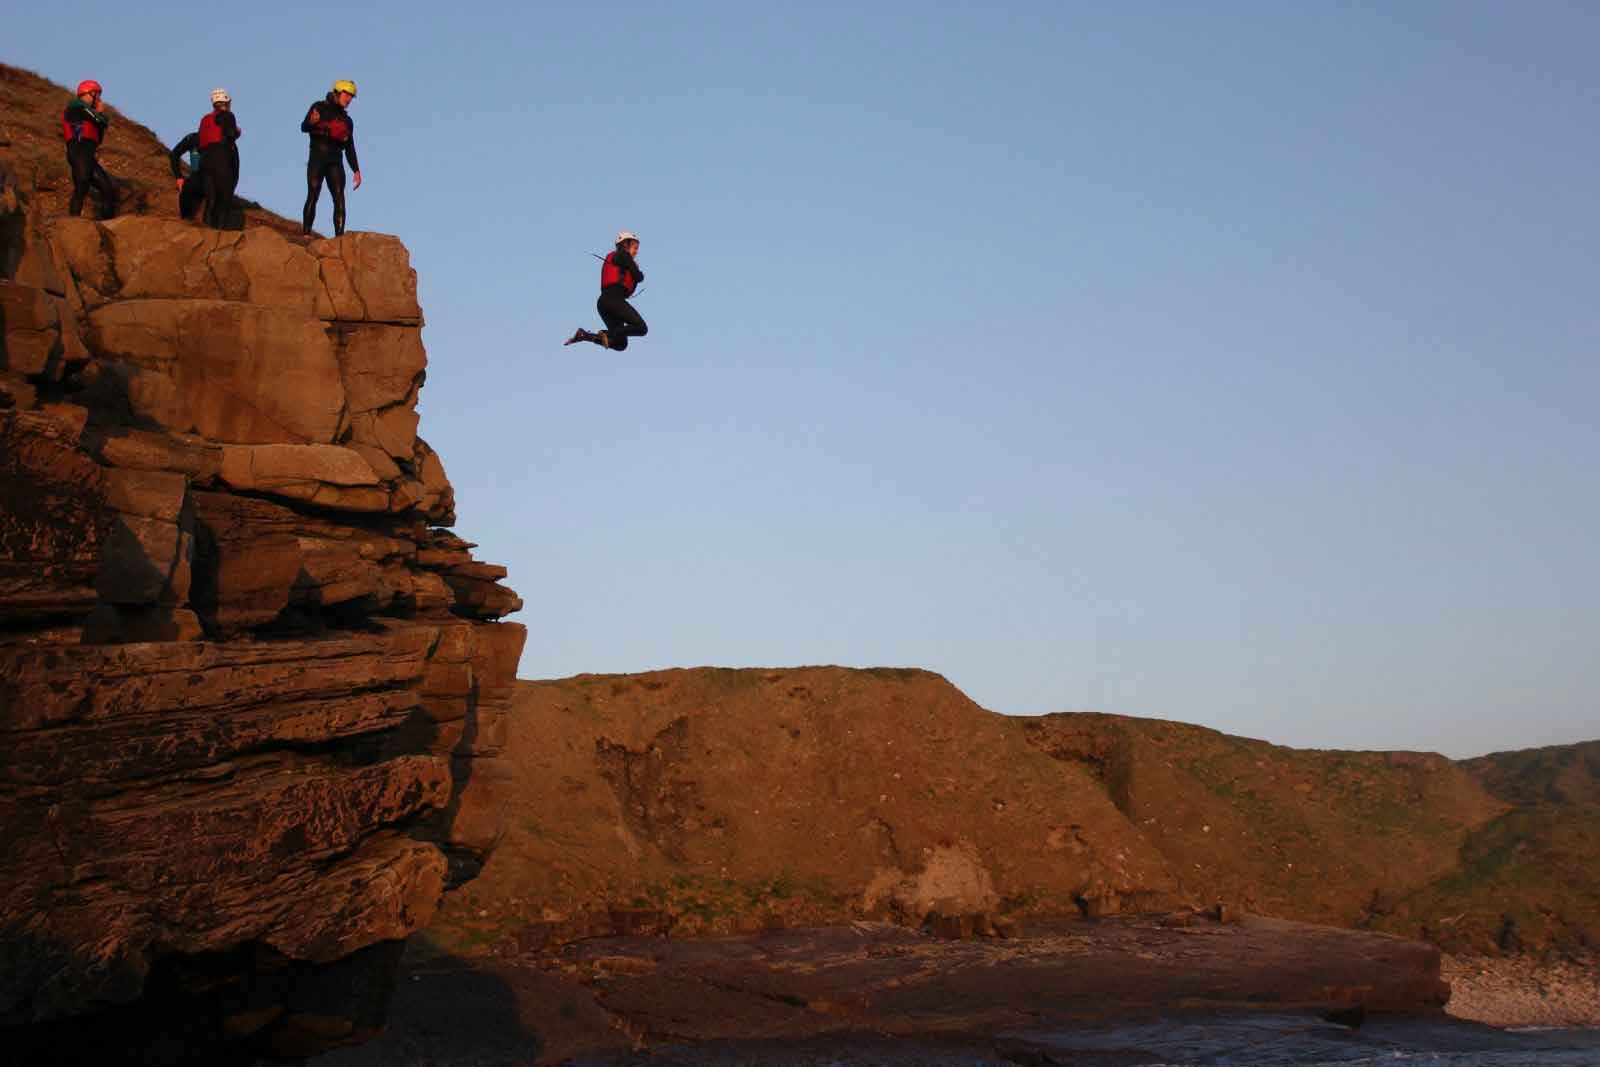 Coasteering Hen Party Idea